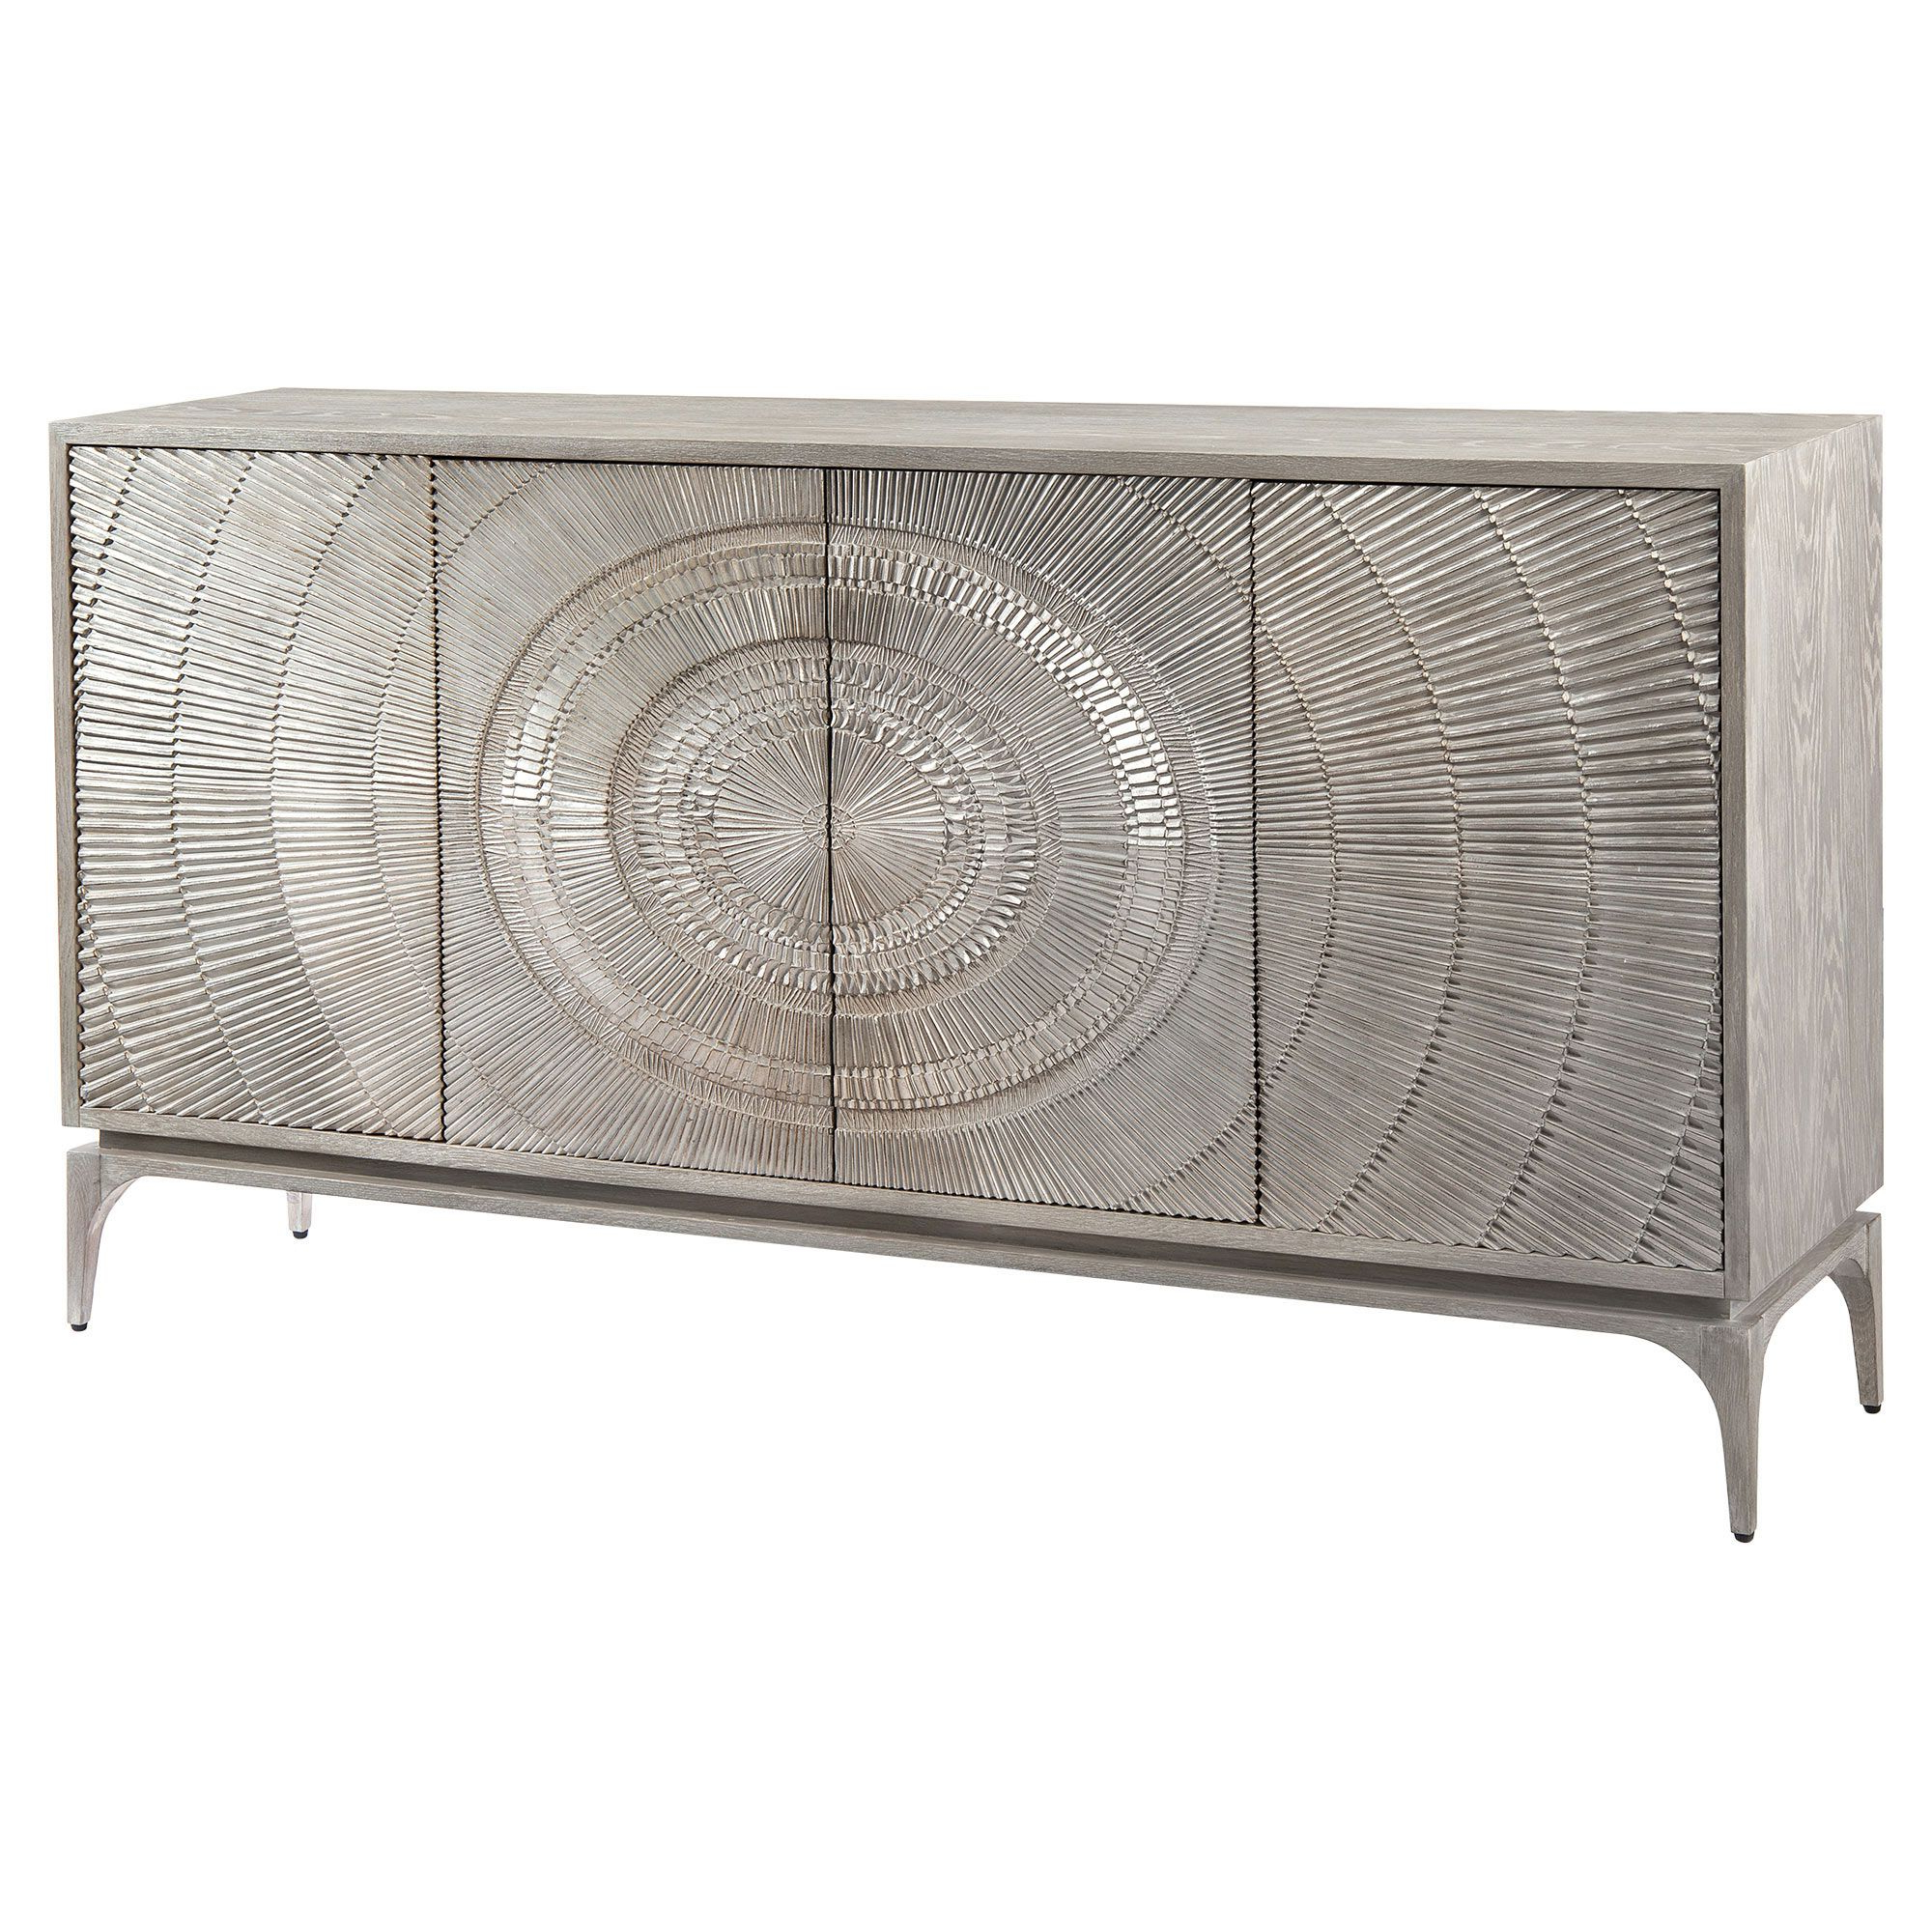 John Richard Laila Regency Radiating Silver Grey Oak Intended For Contemporary Wooden Buffets With Four Open Compartments And Metal Tapered Legs (View 14 of 20)